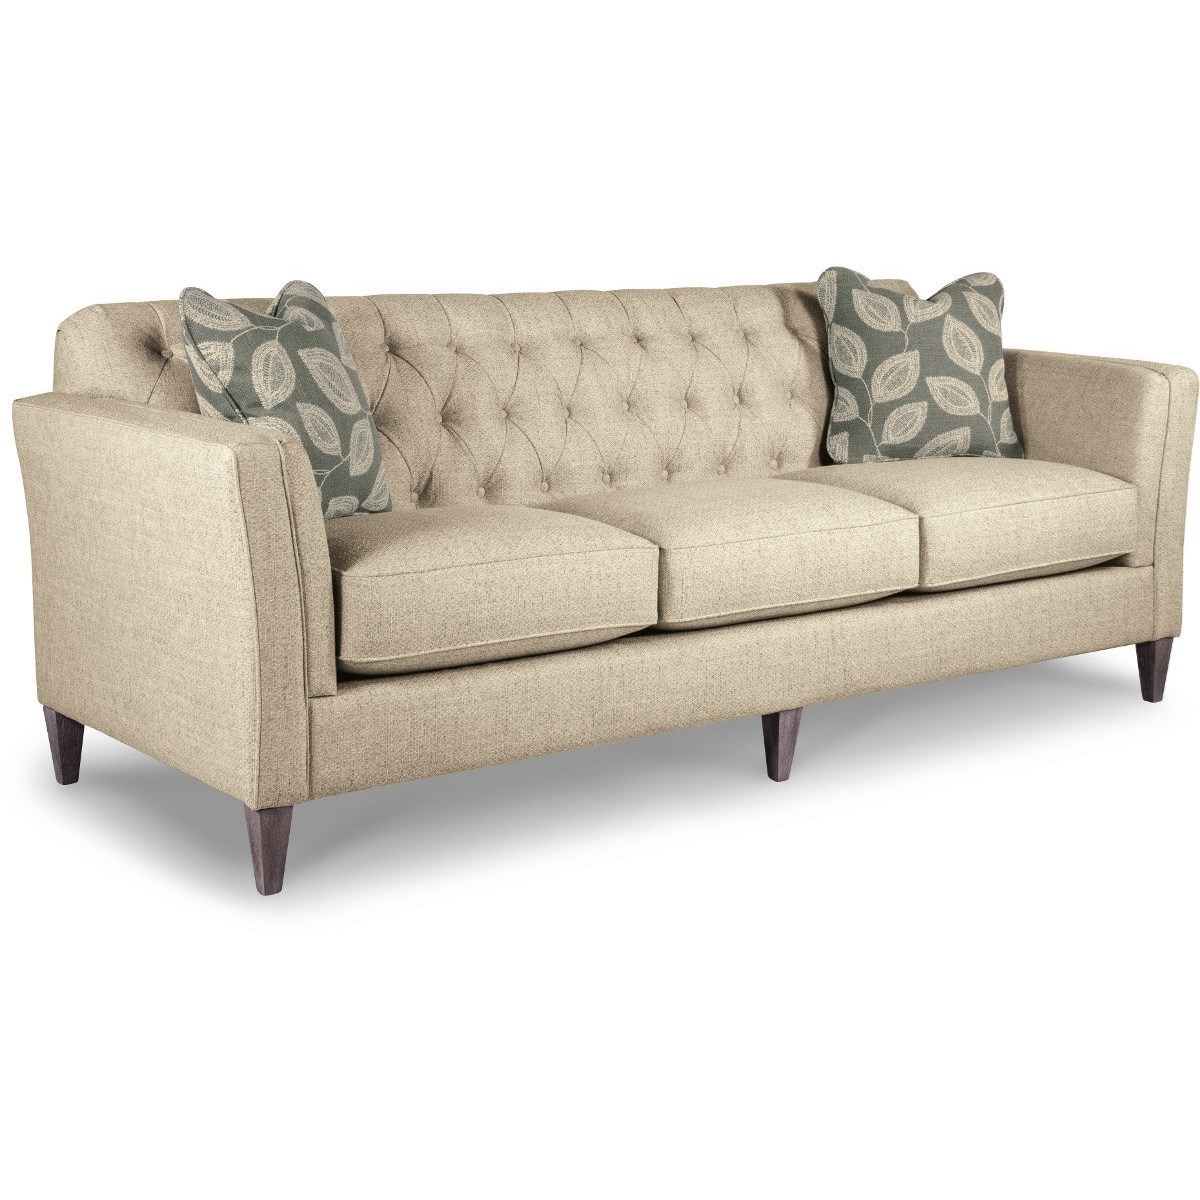 Attrayant La Z Boy Alexandria Transitional Premier Sofa With Chesterfield Button  Tufting